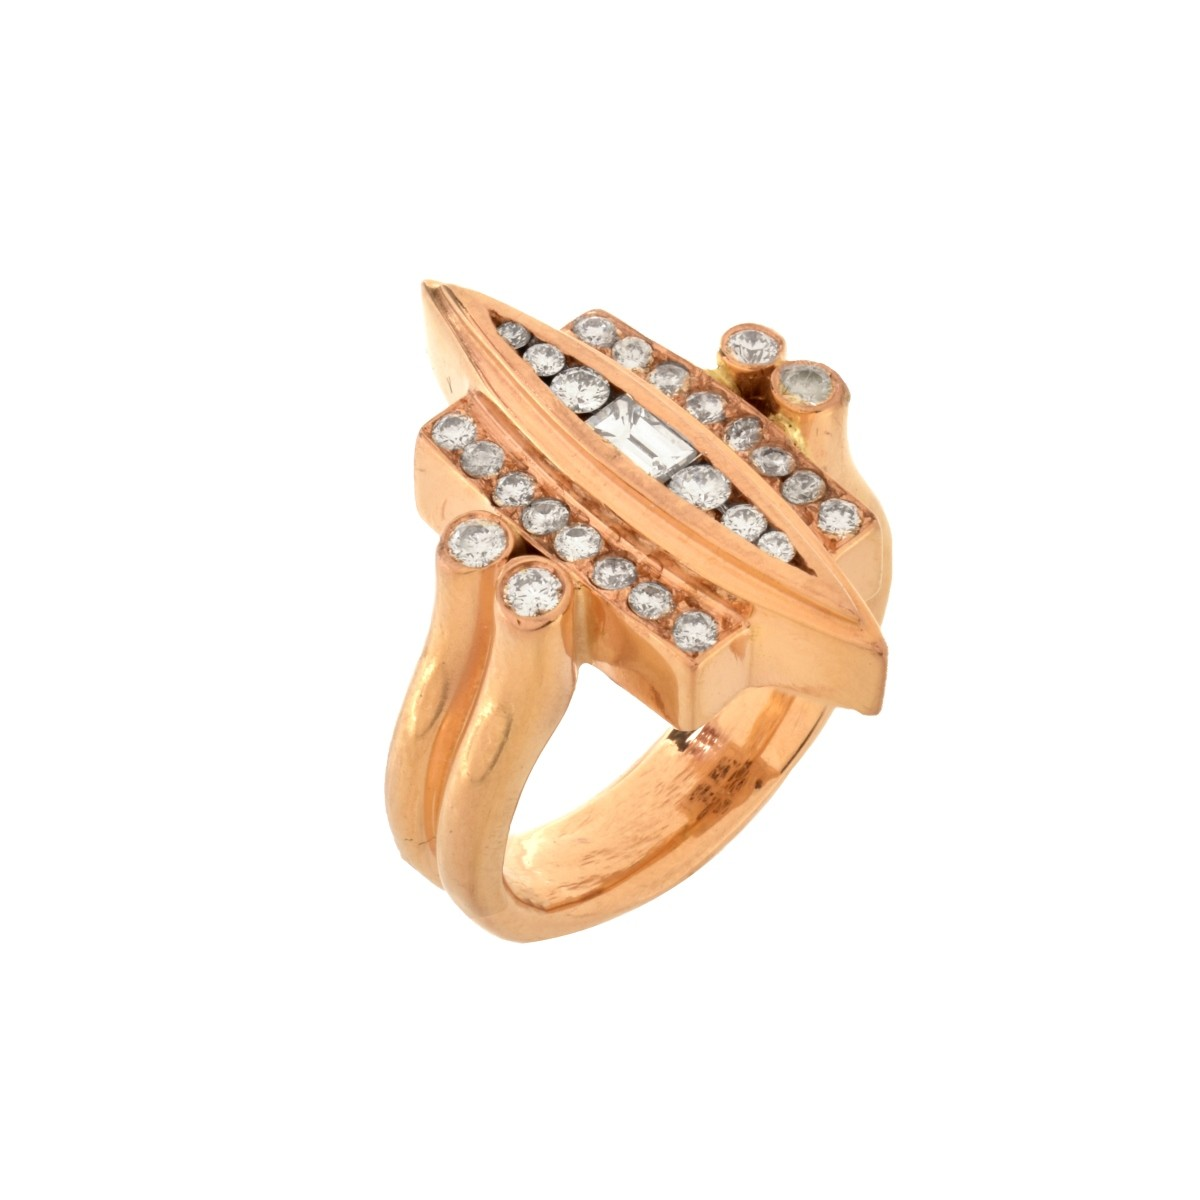 Diamond and 18K Ring